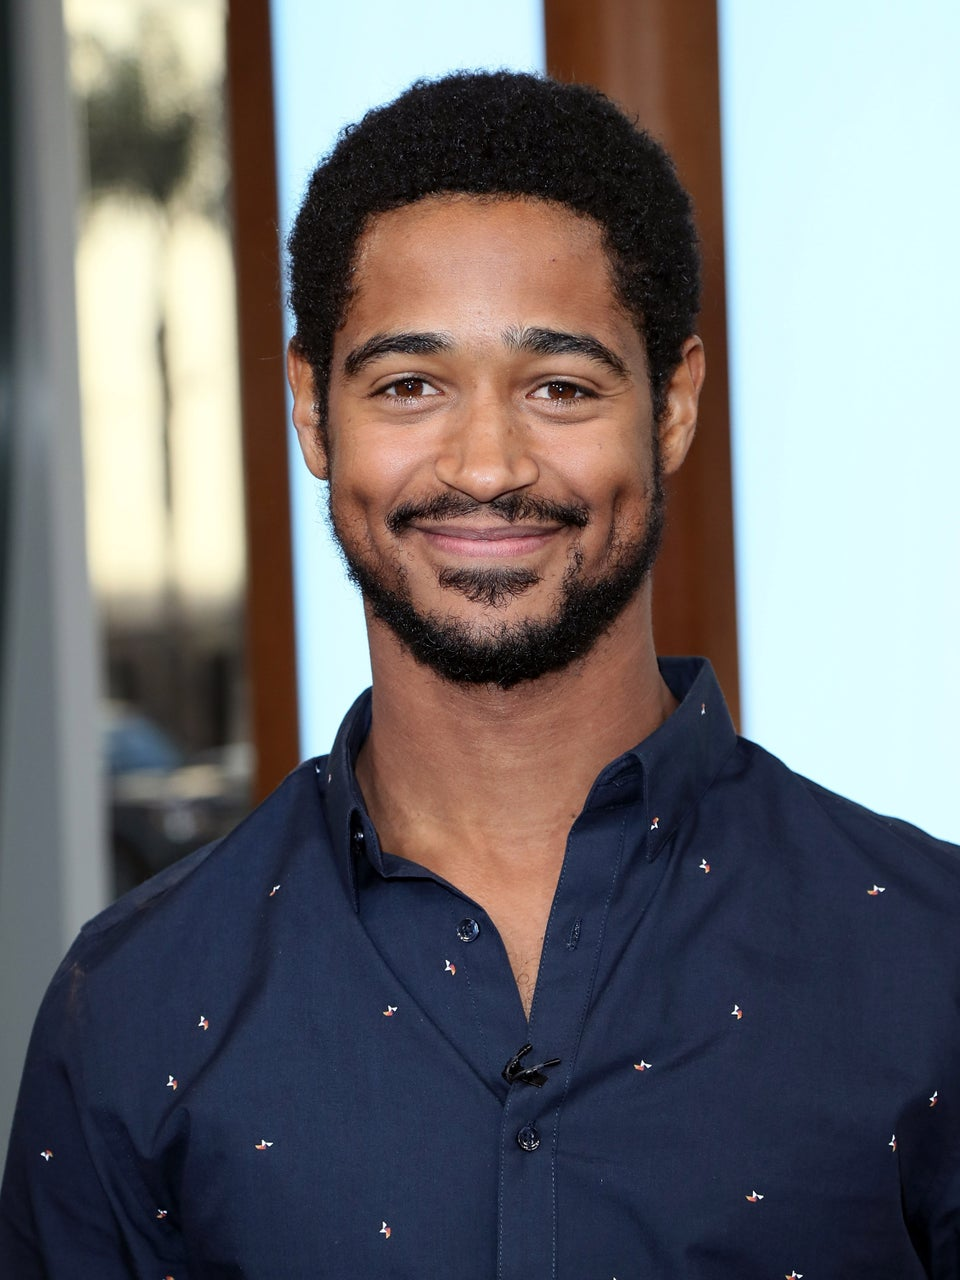 How To Get Away With Murder Star Alfred Enoch Still Hasn't Seen Himself Die